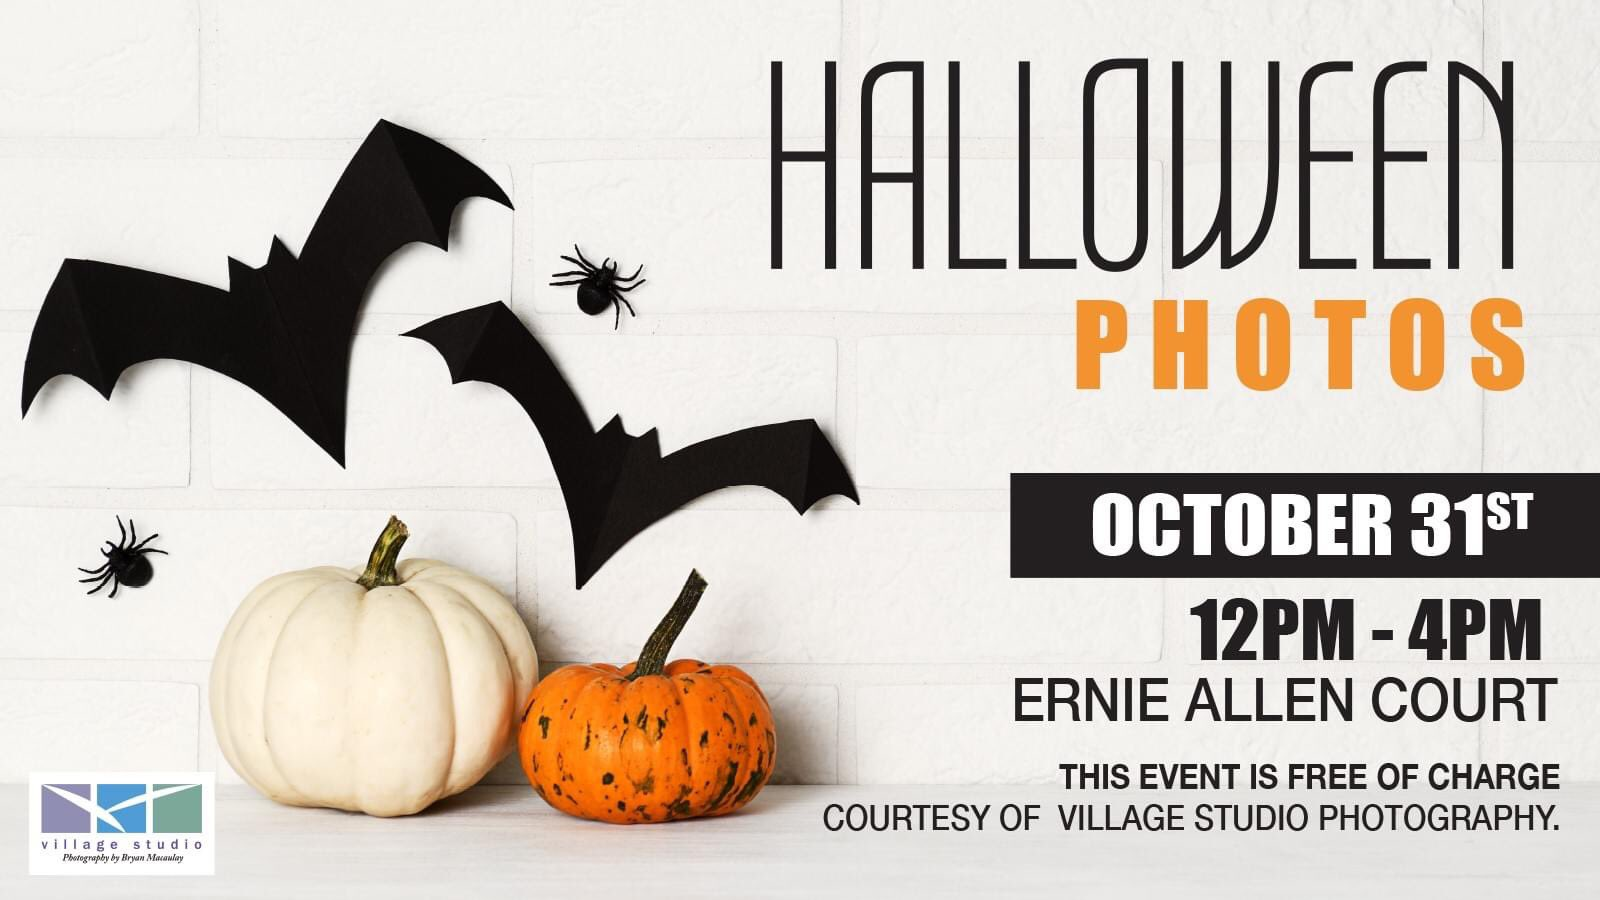 Come to Seaway Mall for FREE Halloween Photo!